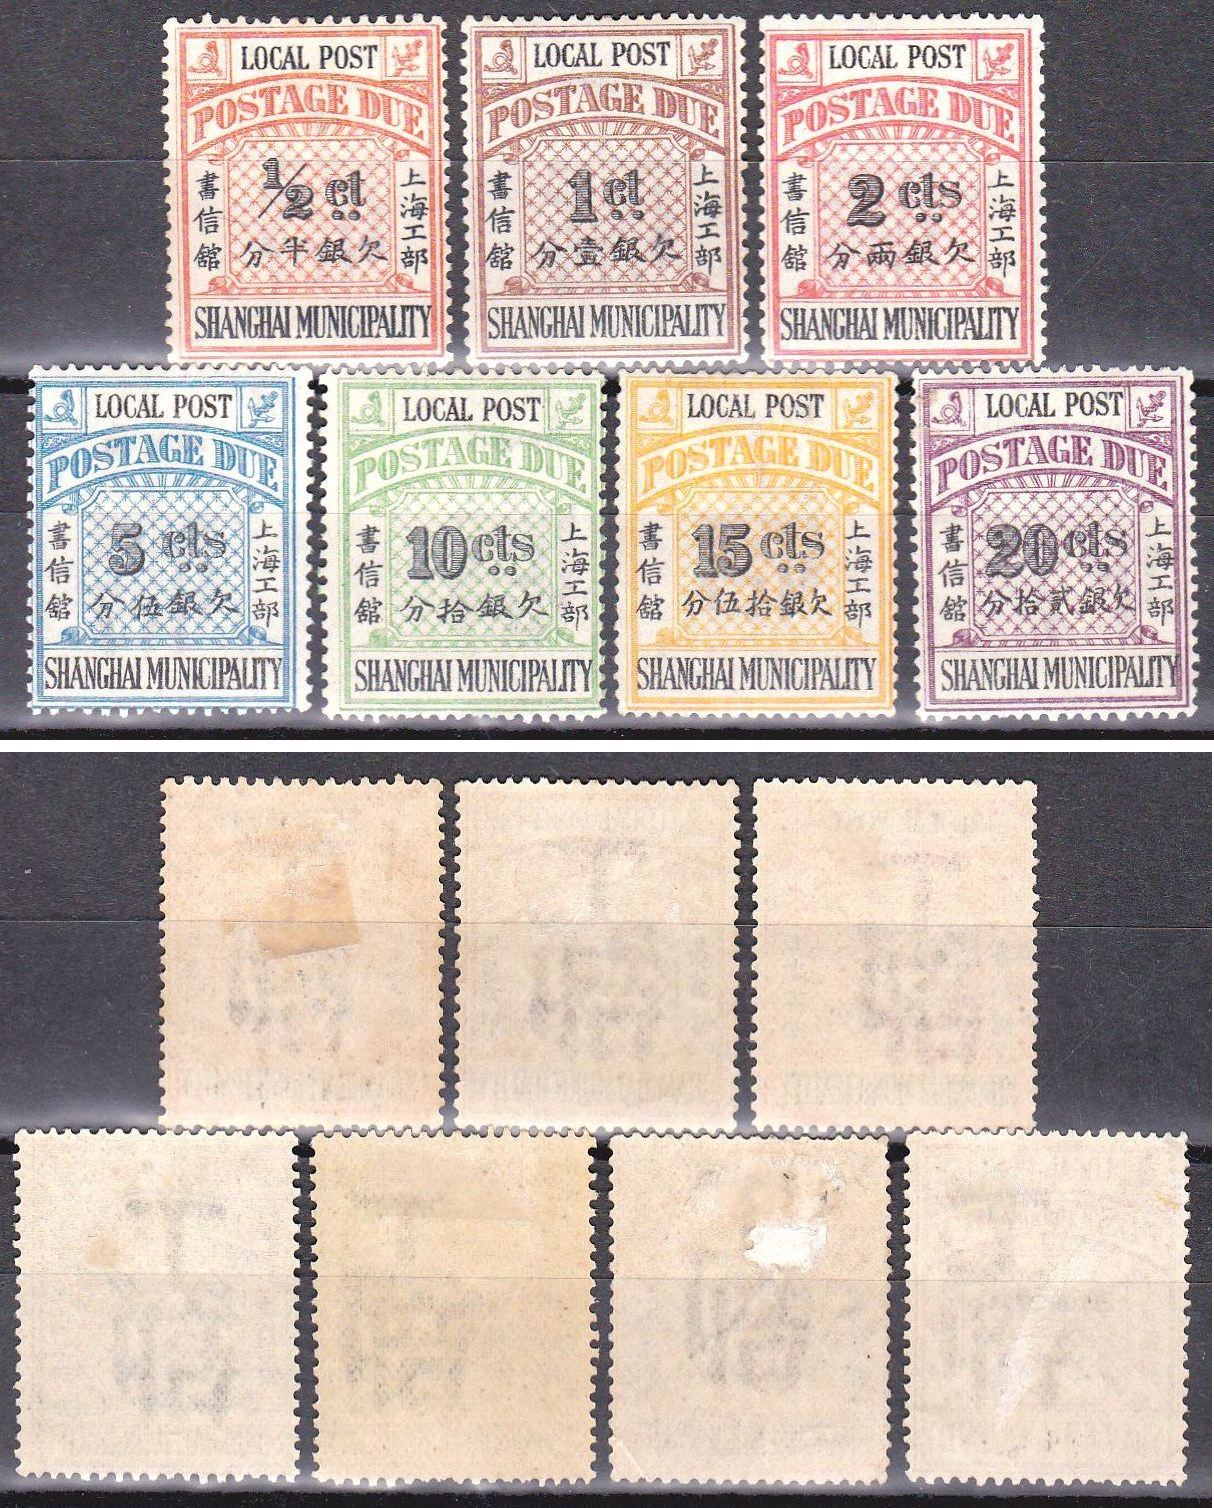 M1022, Shanghai Local Post Due Stamps, Full 7 Pcs, 1893